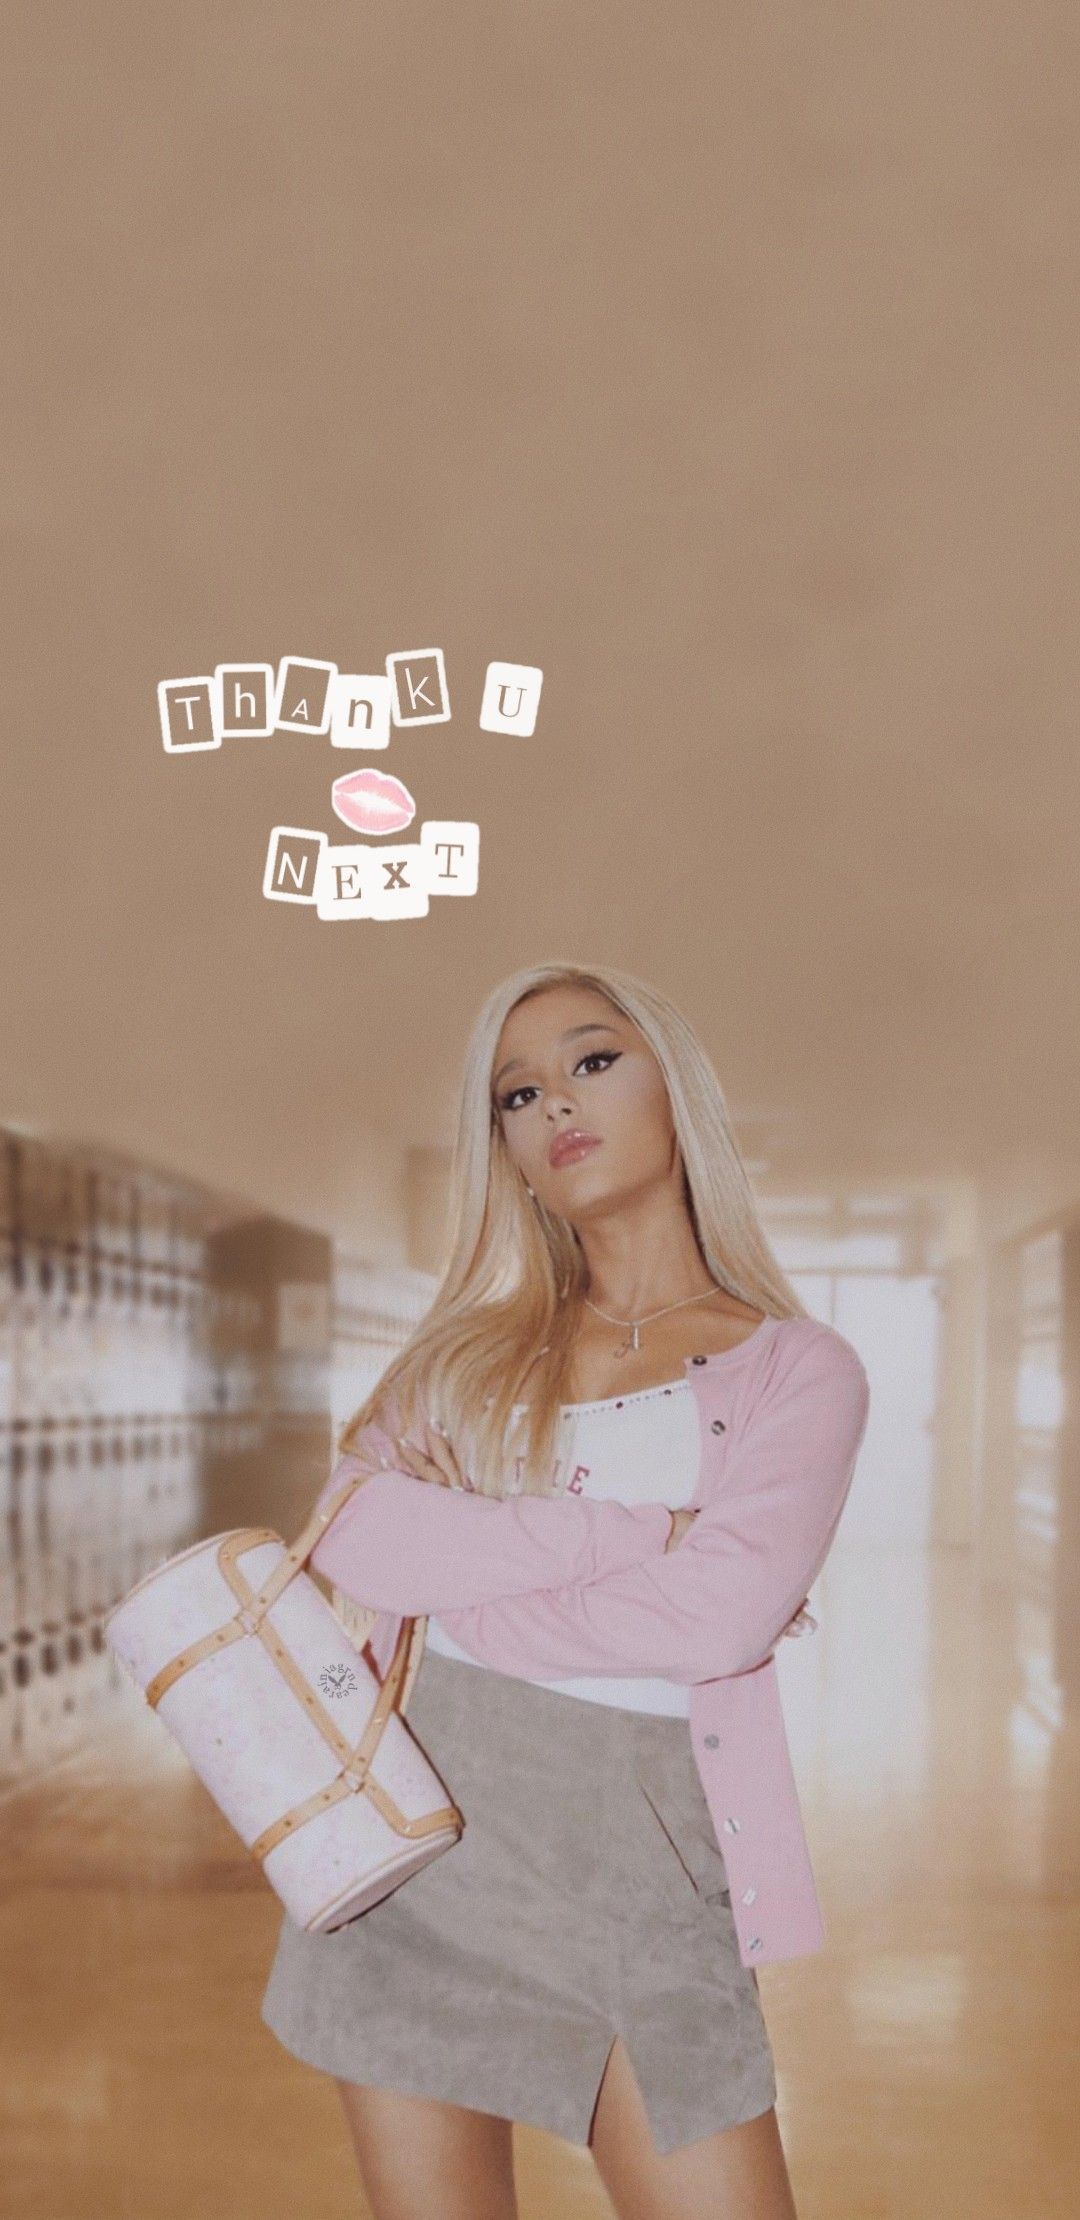 ariana grande wallpapers - thank you, next